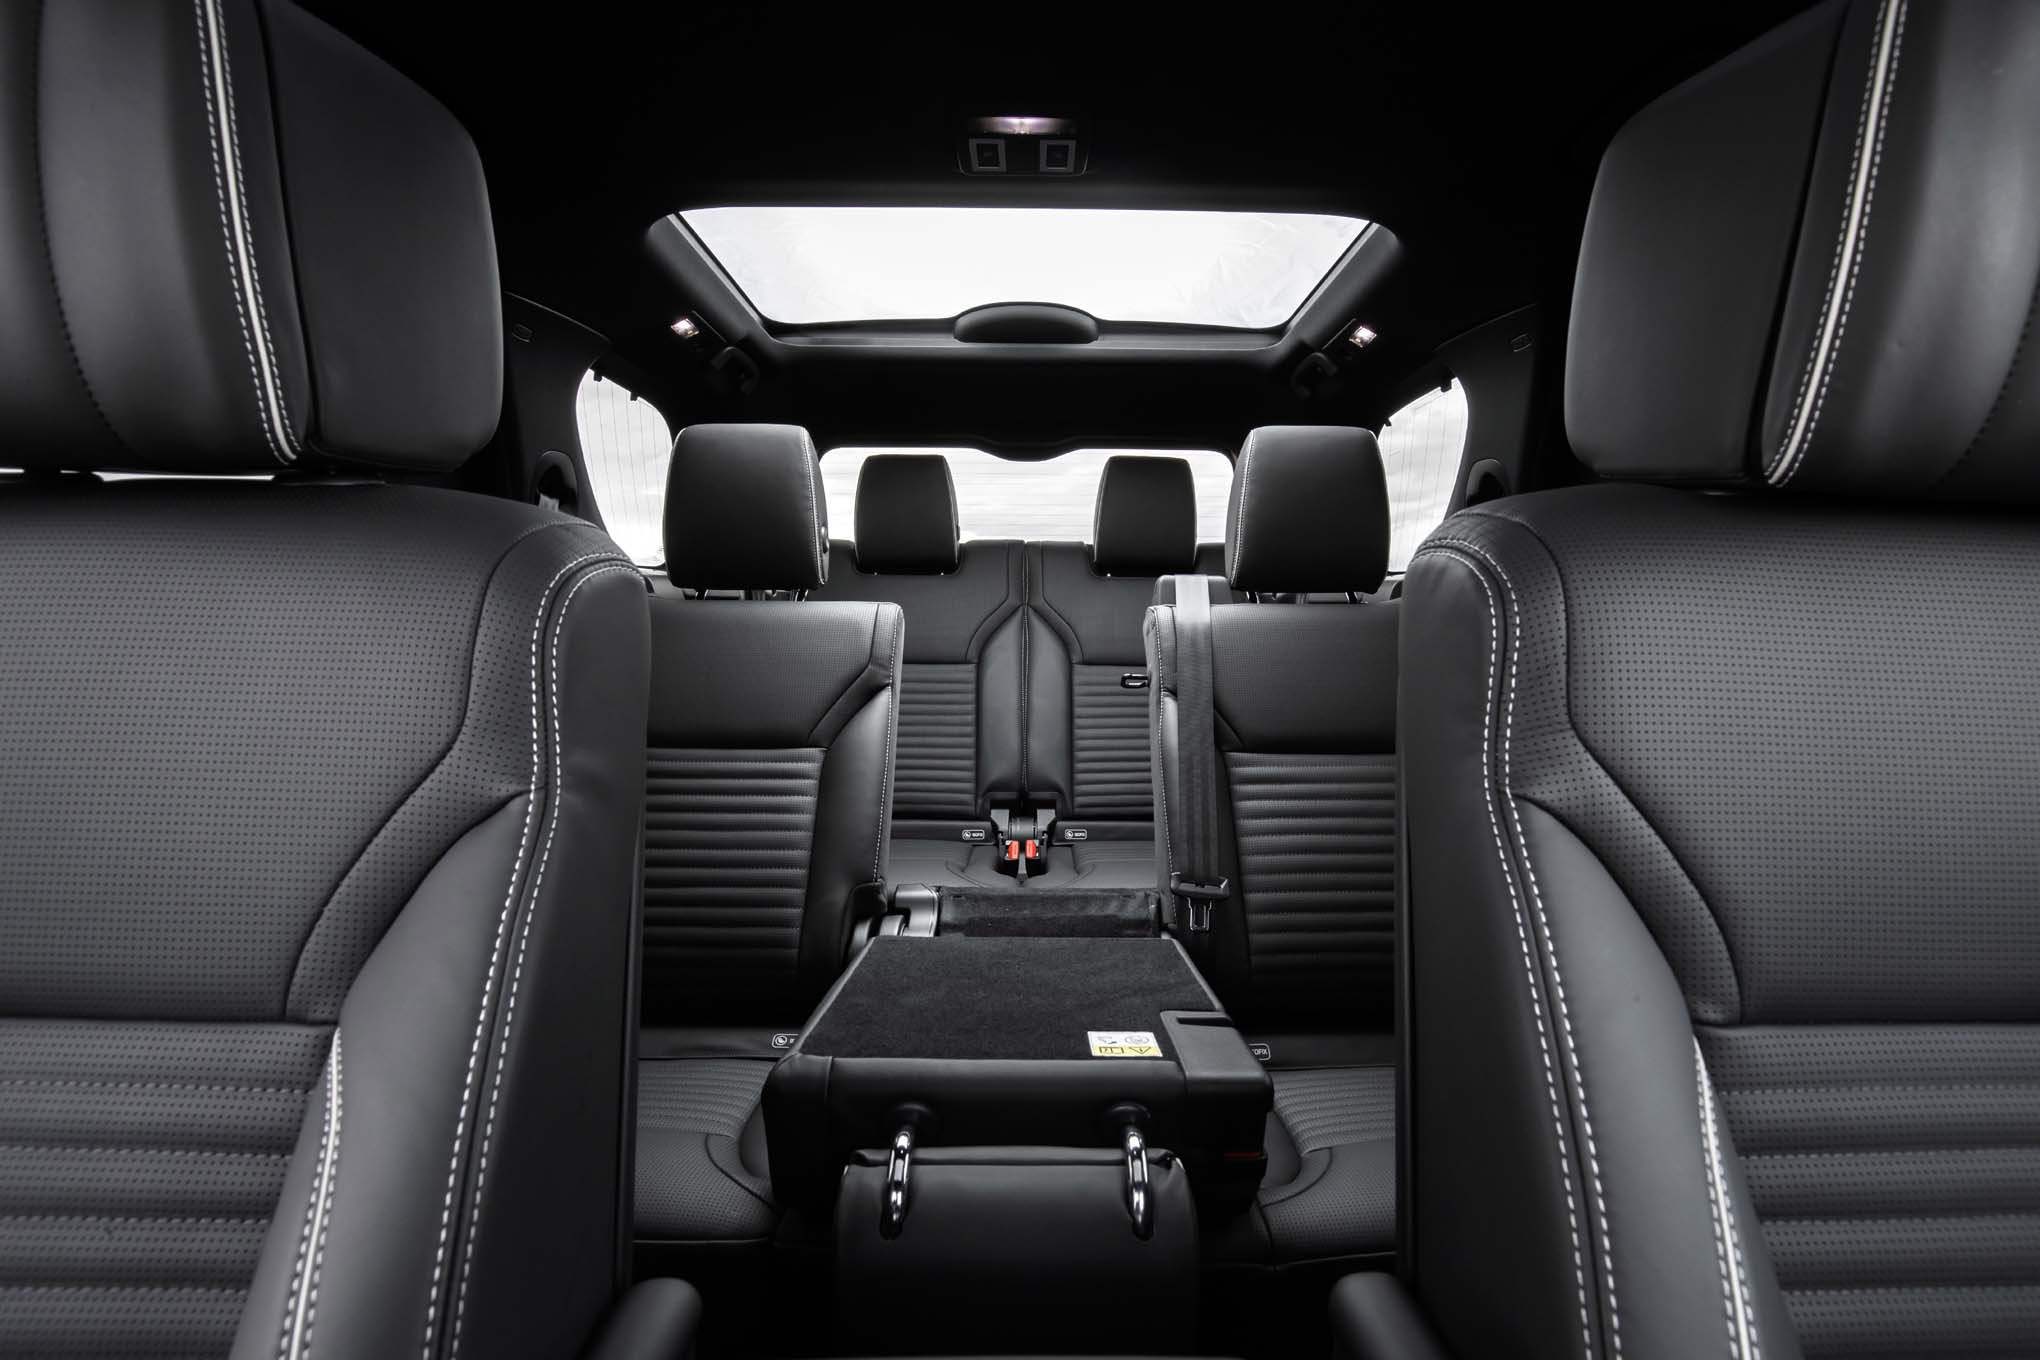 2017 Land Rover Discovery rear interior view